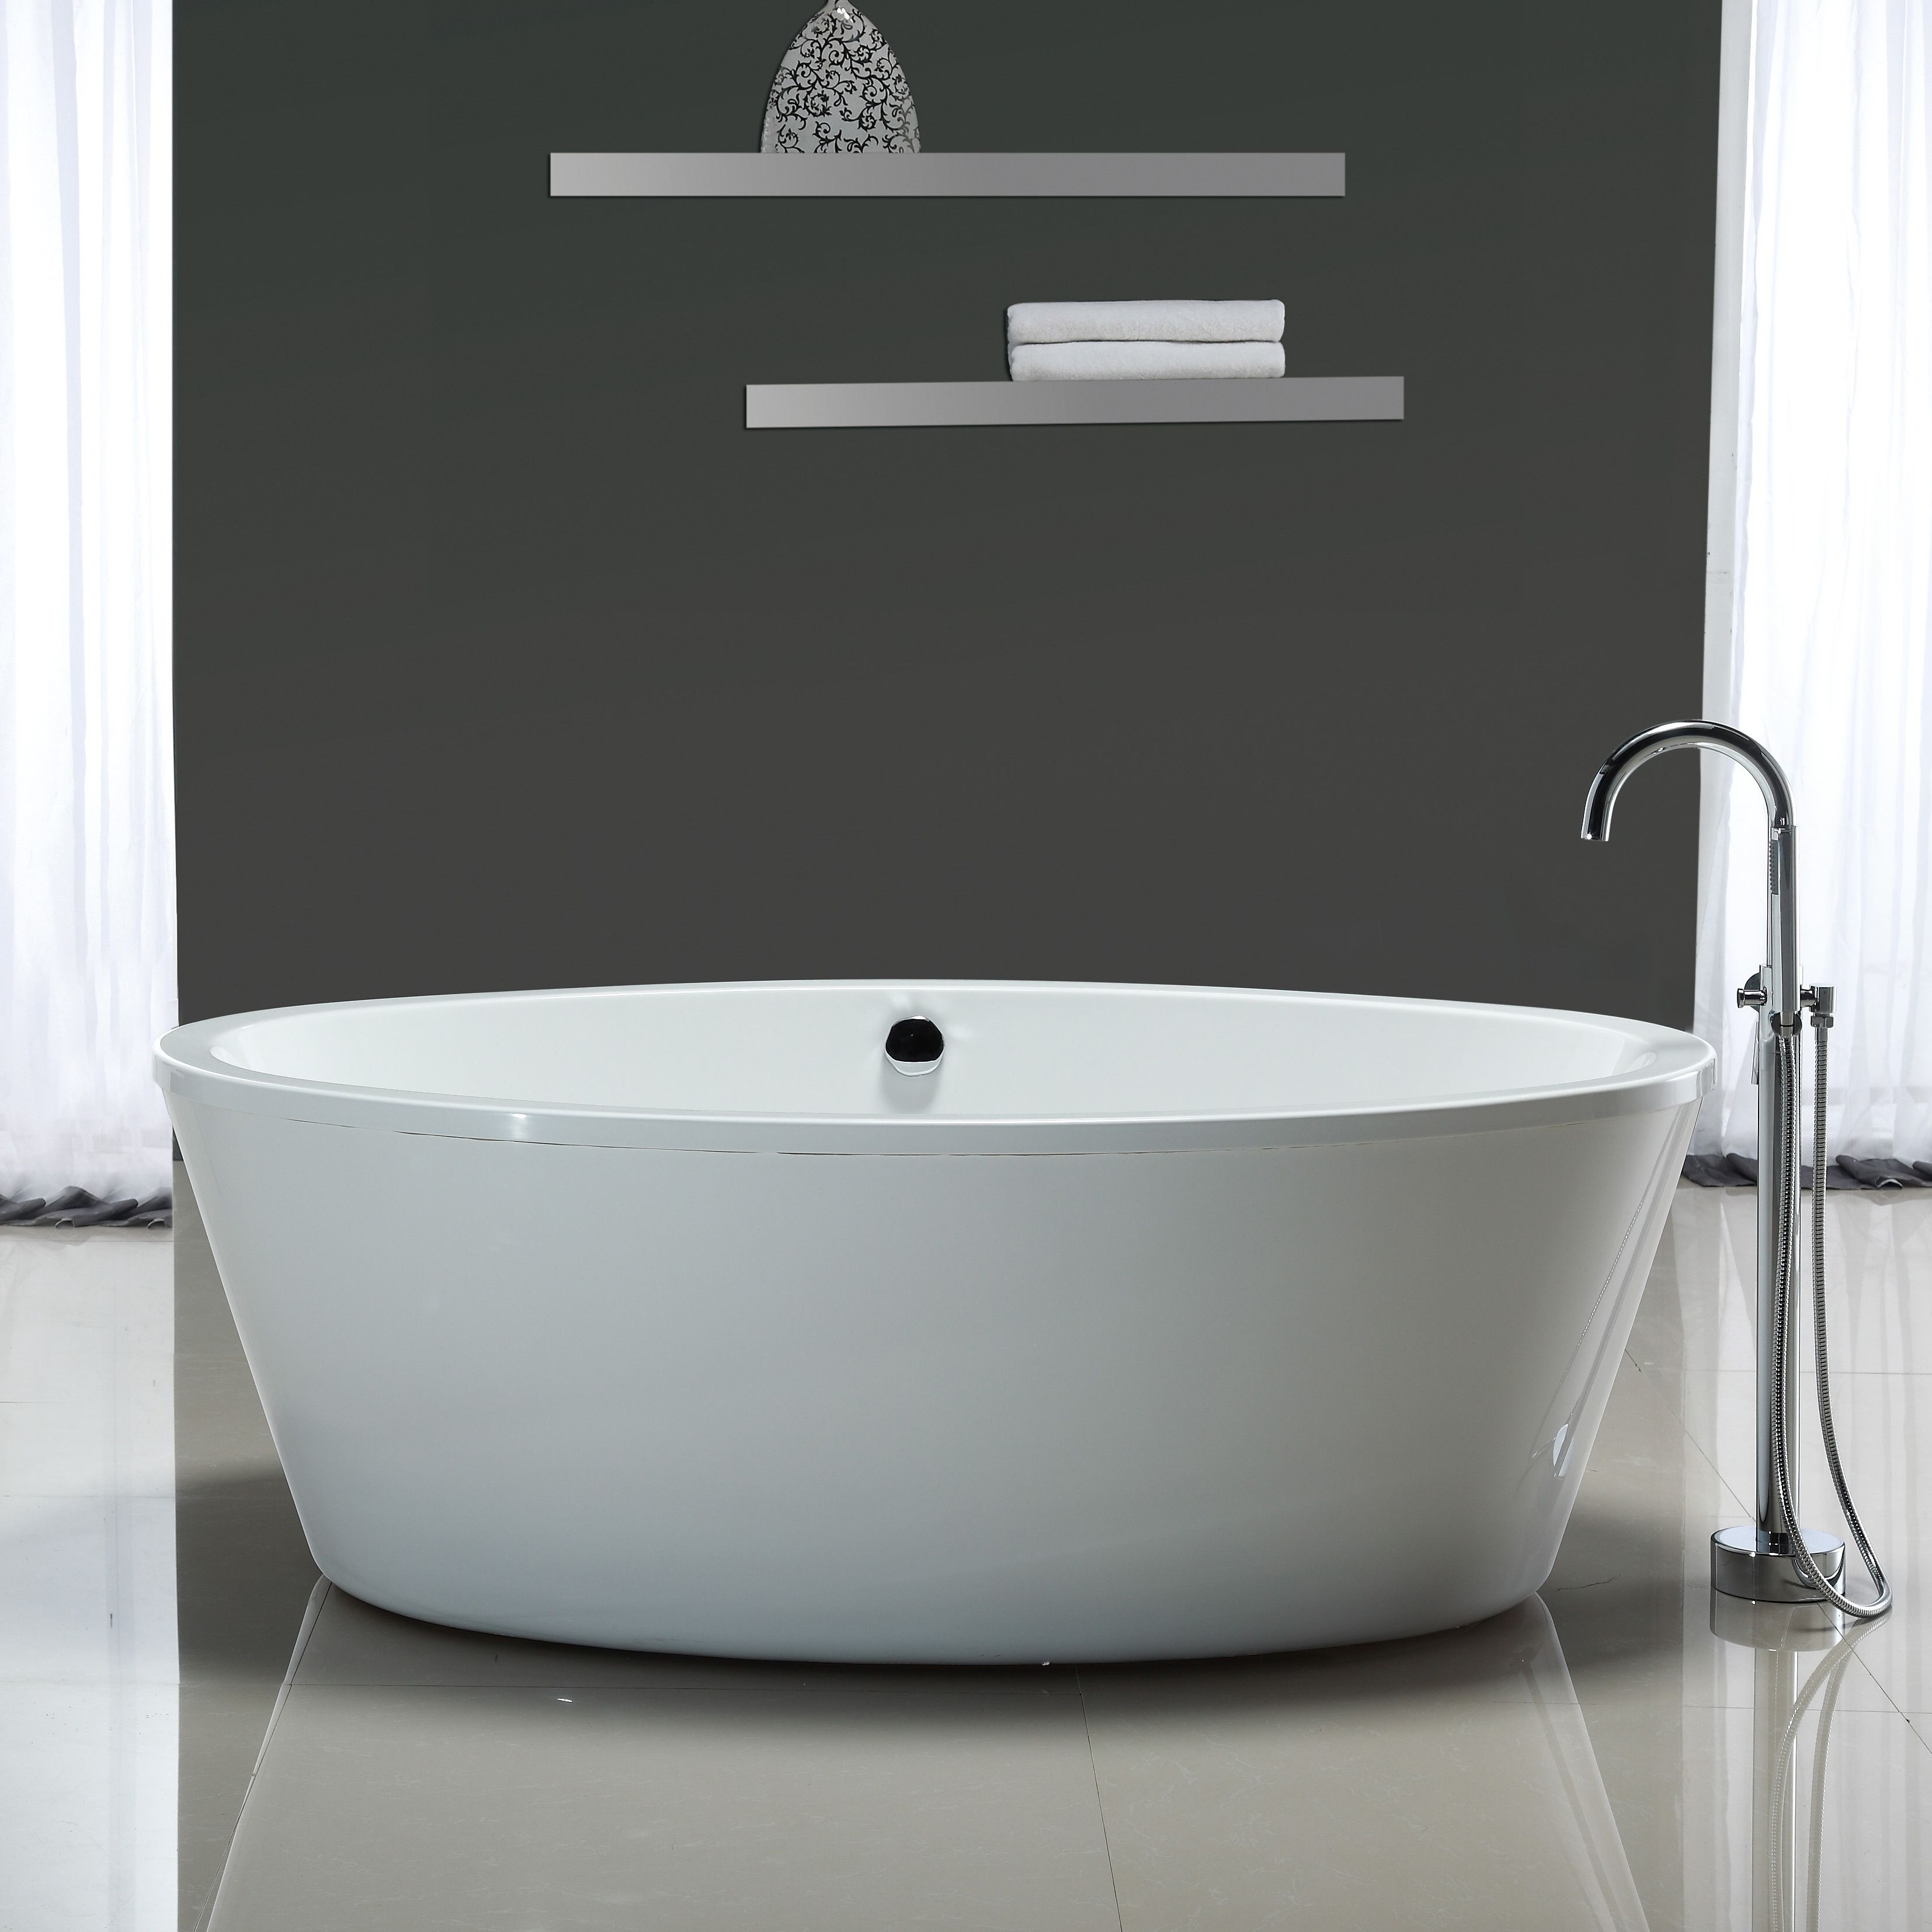 Shop Wayfair for All Bathtubs to match every style and budget. Enjoy ...